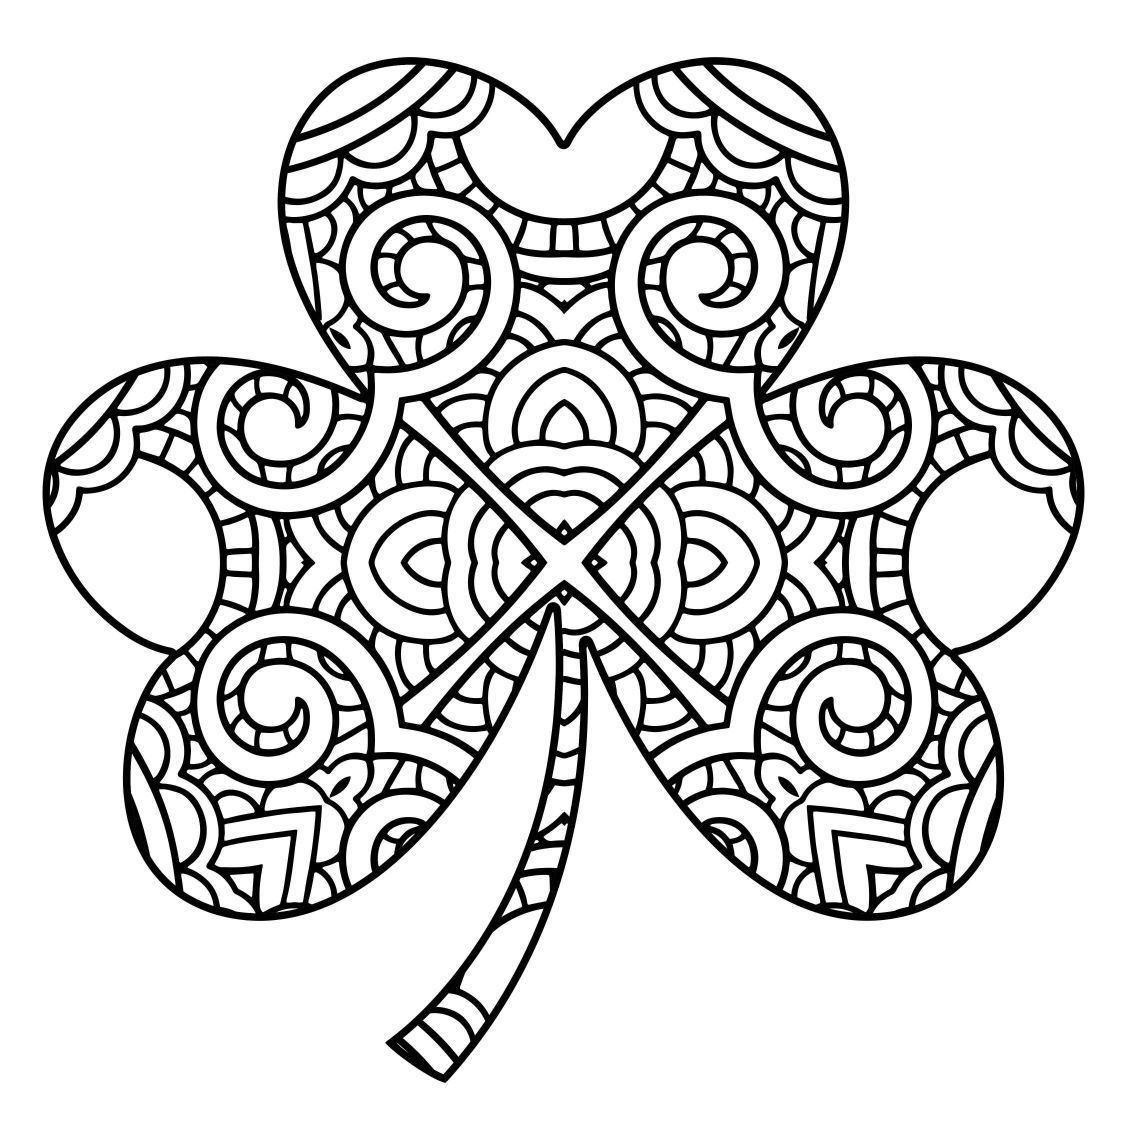 1125x1125 Awesome Shamrock Coloring Draw To Color For Trinity Page Popular